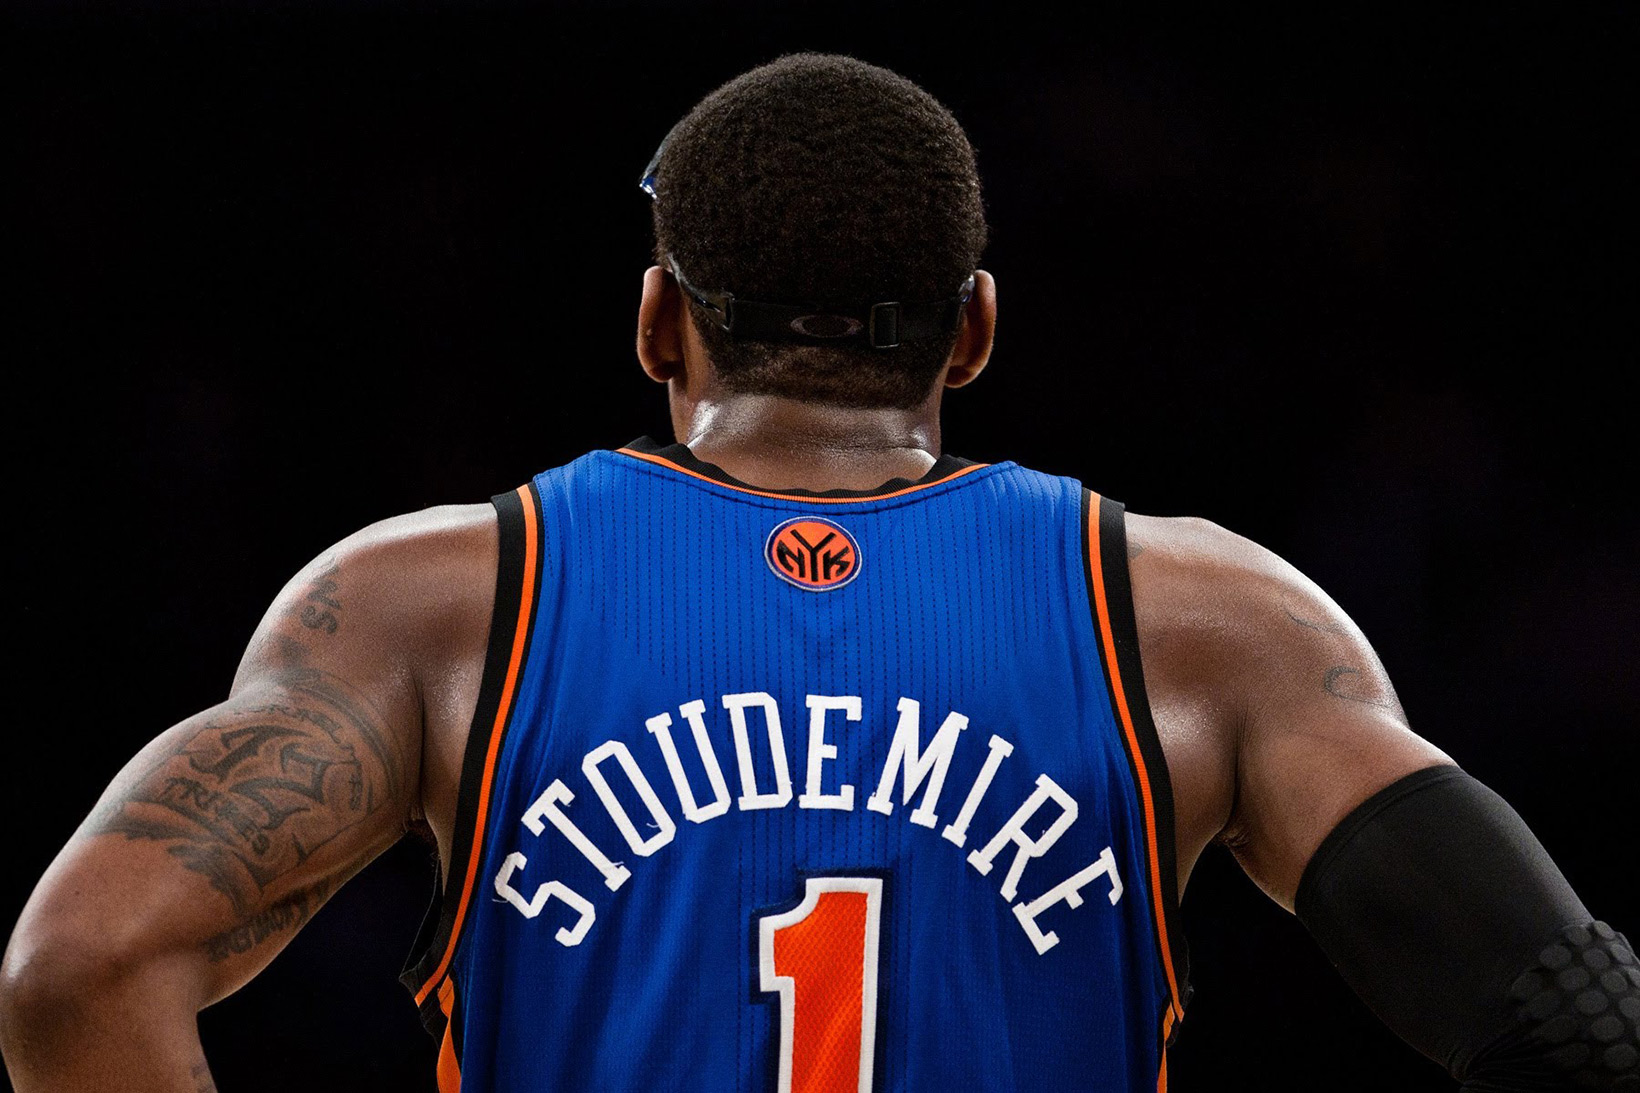 """Amar'e Stoudemire Pens """"This Isn't Goodbye"""" Letter Regarding His Basketball Career and Next Move"""